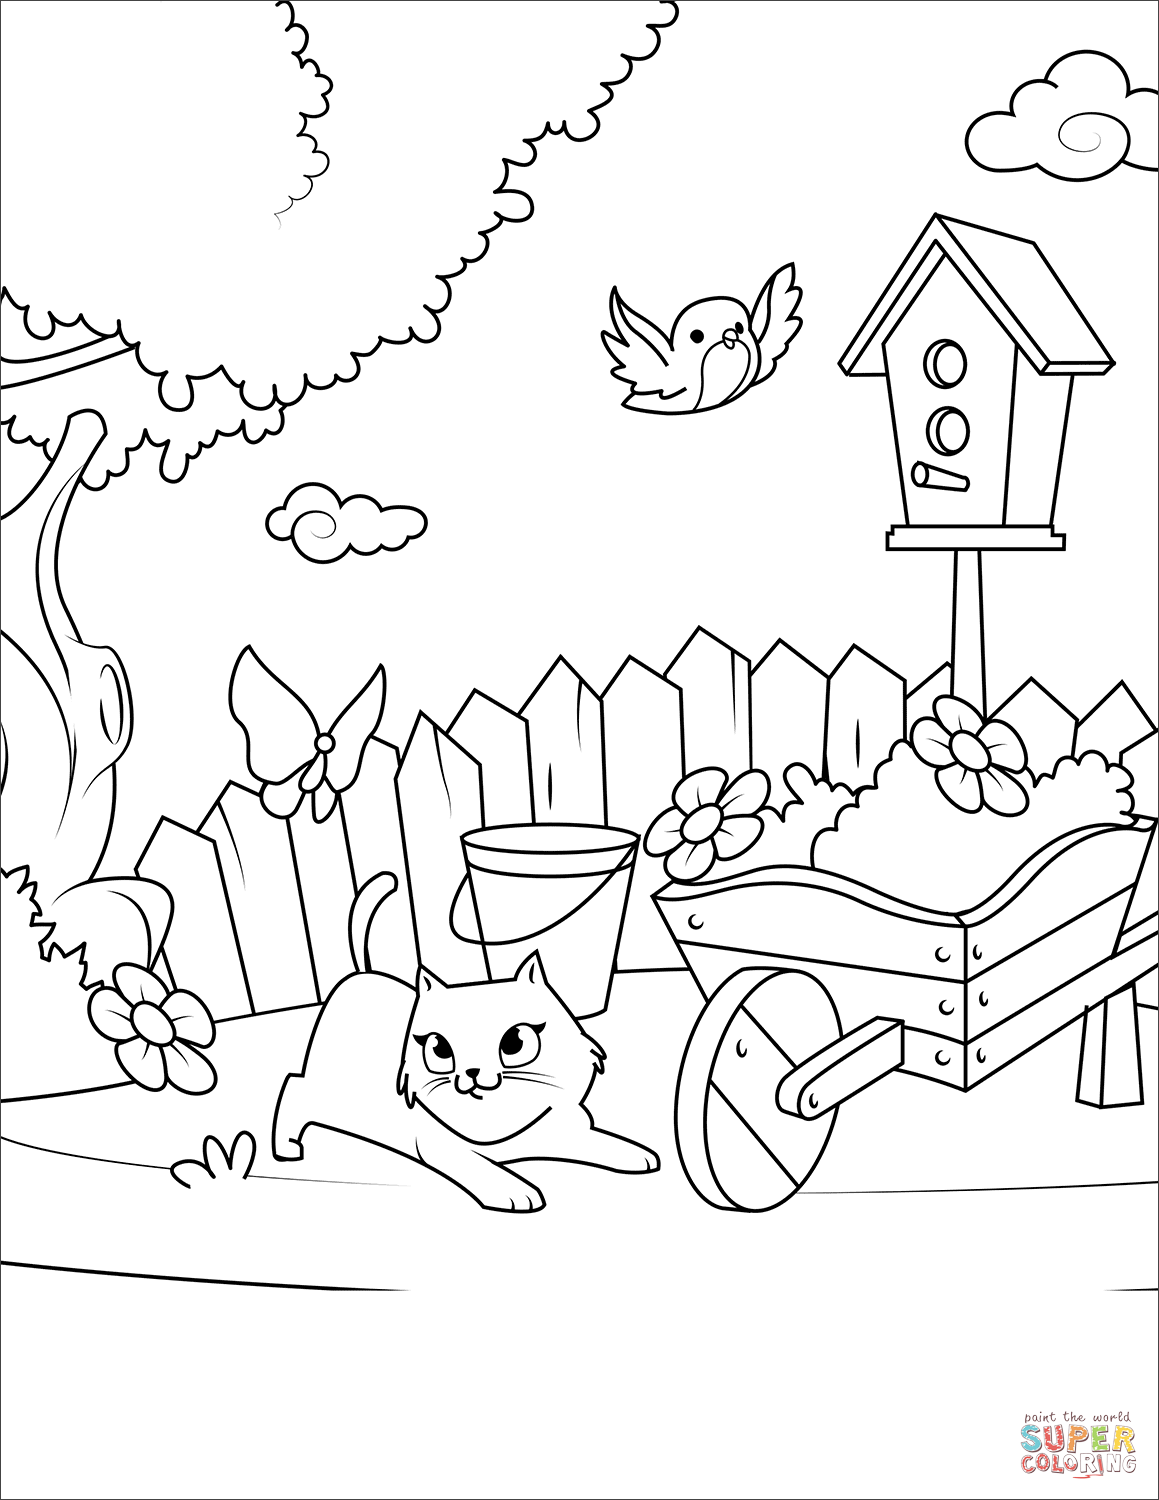 Cat Playing With A Butterfly In The Yard Coloring Page